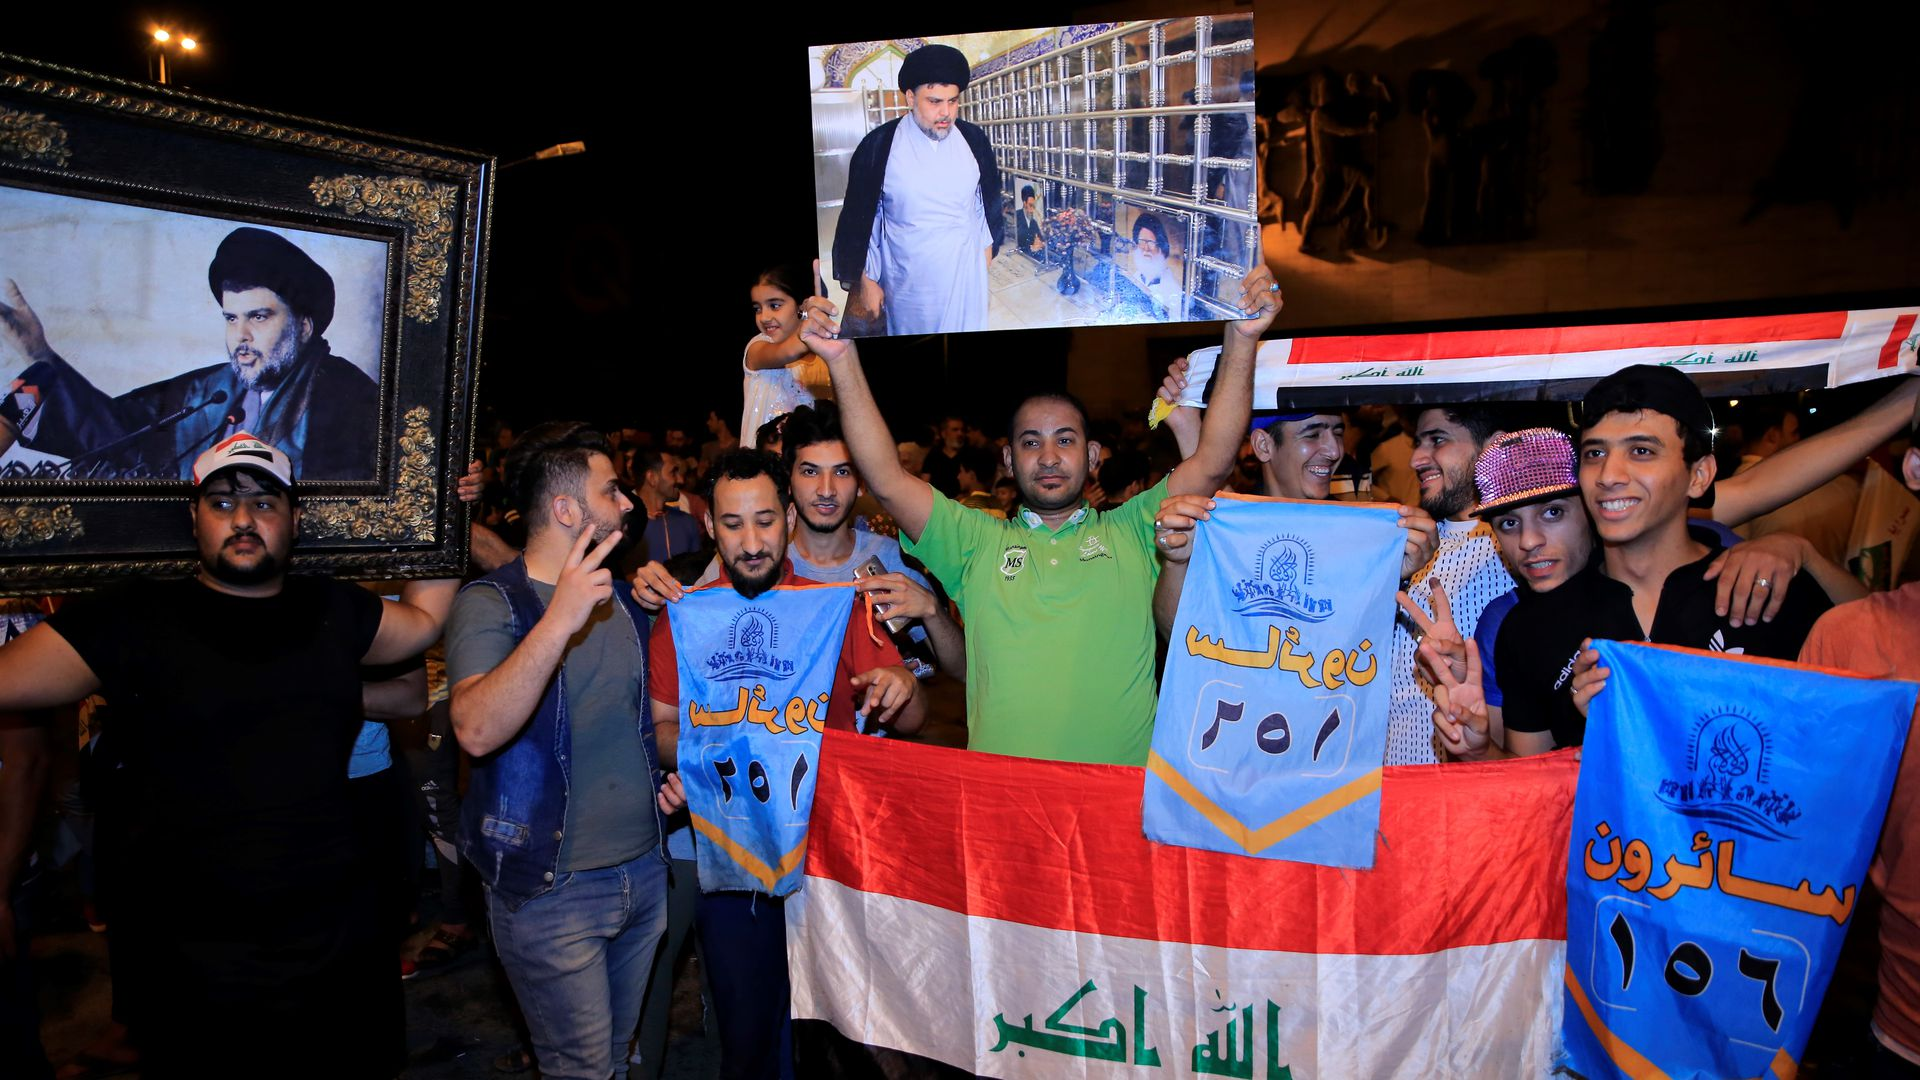 Supporters of Iraqi Shiite cleric Moqtada al-Sadr celebrate the results of the parliamentary election at the Tahrir Square, Baghdad, Iraq, on May 13, 2018.